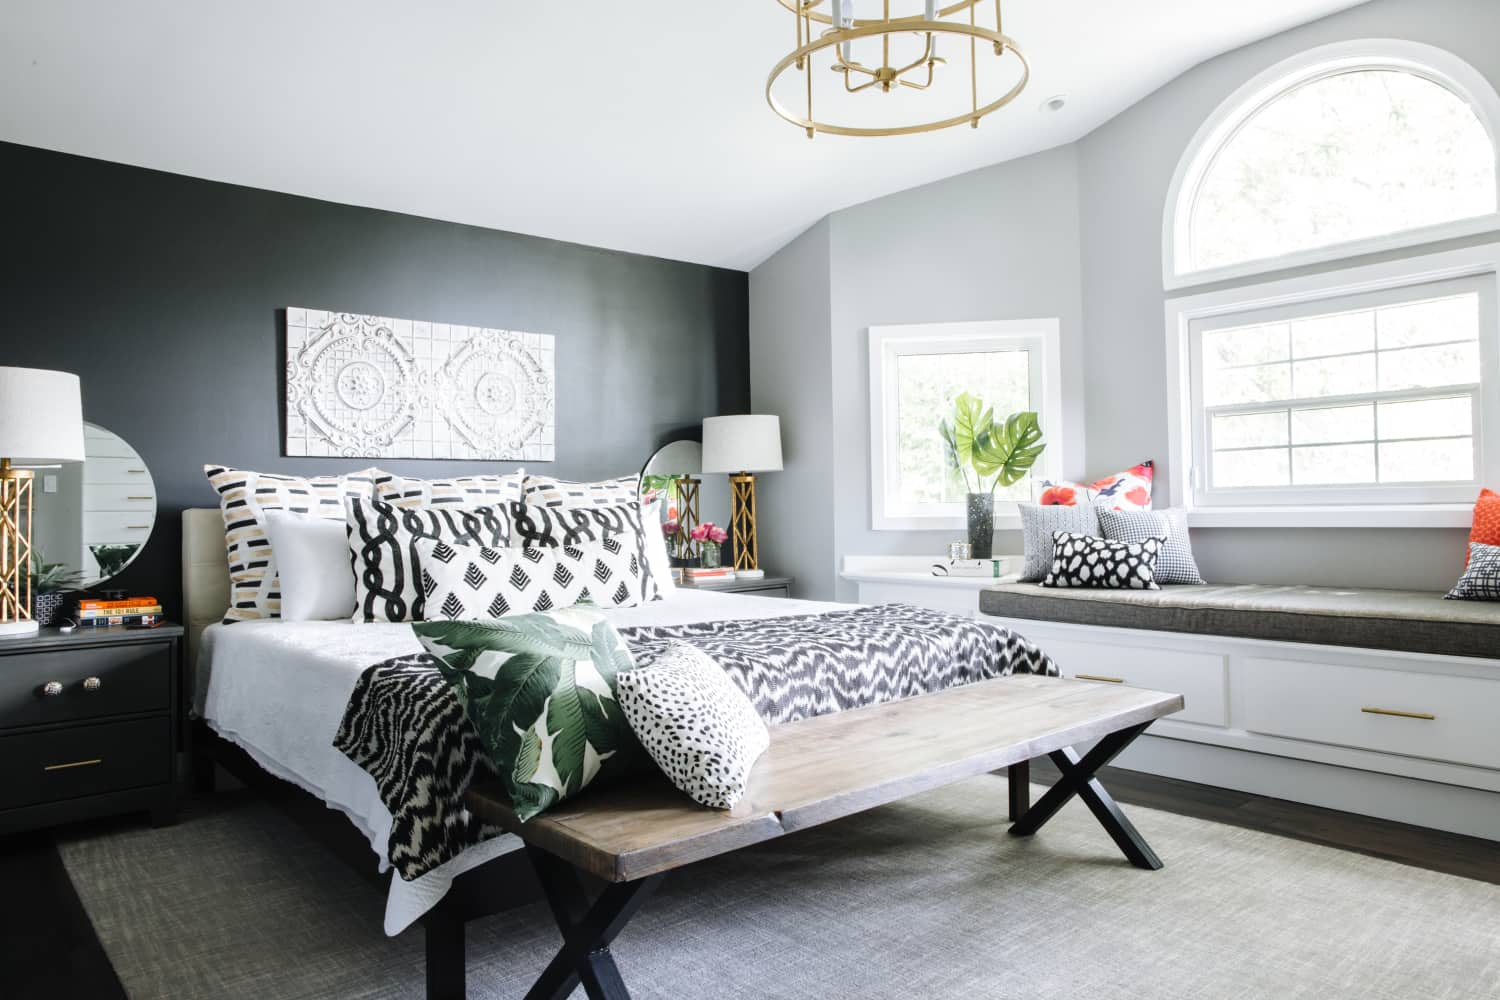 These 4 Bedroom Features Have Fallen Out of Favor